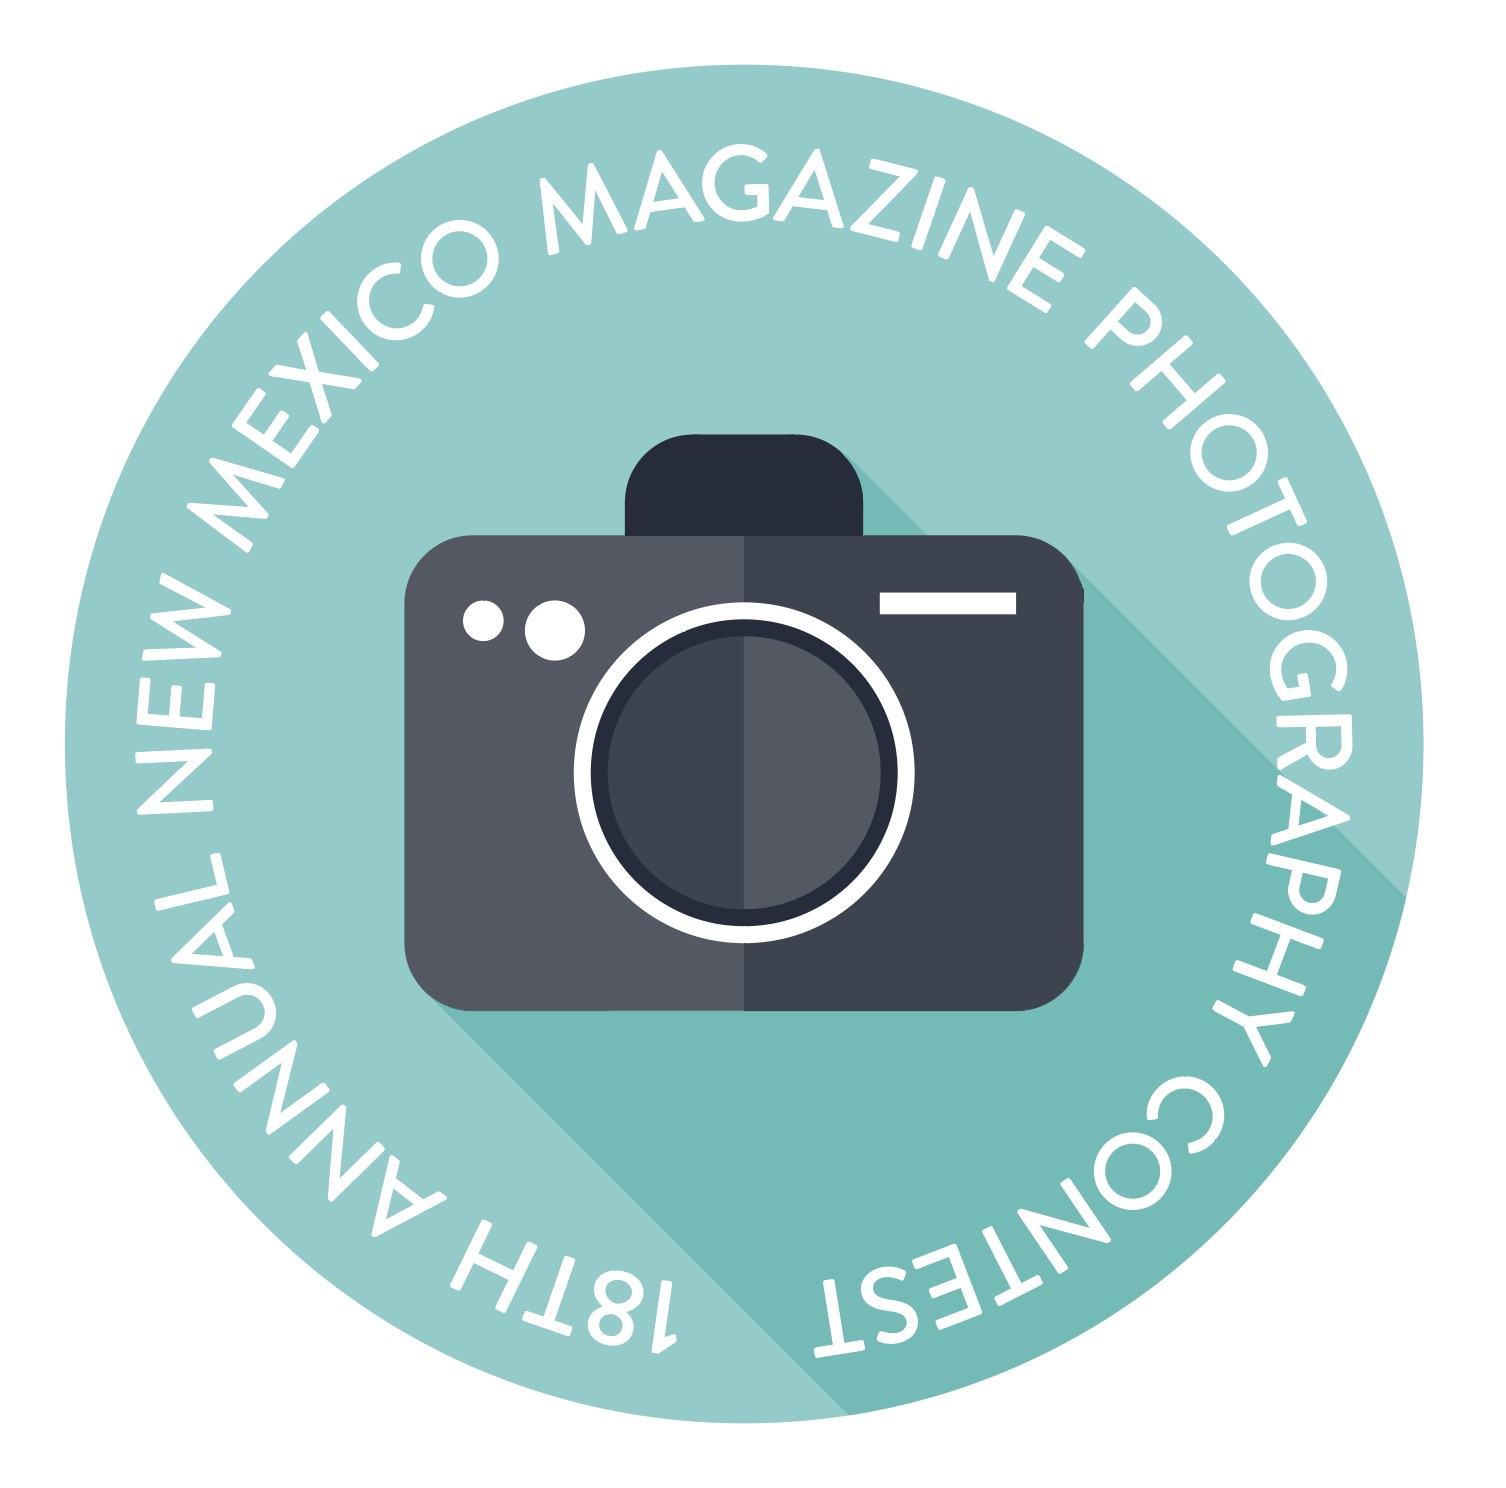 18th Annual New Mexico Magazine Photography Contest - logo